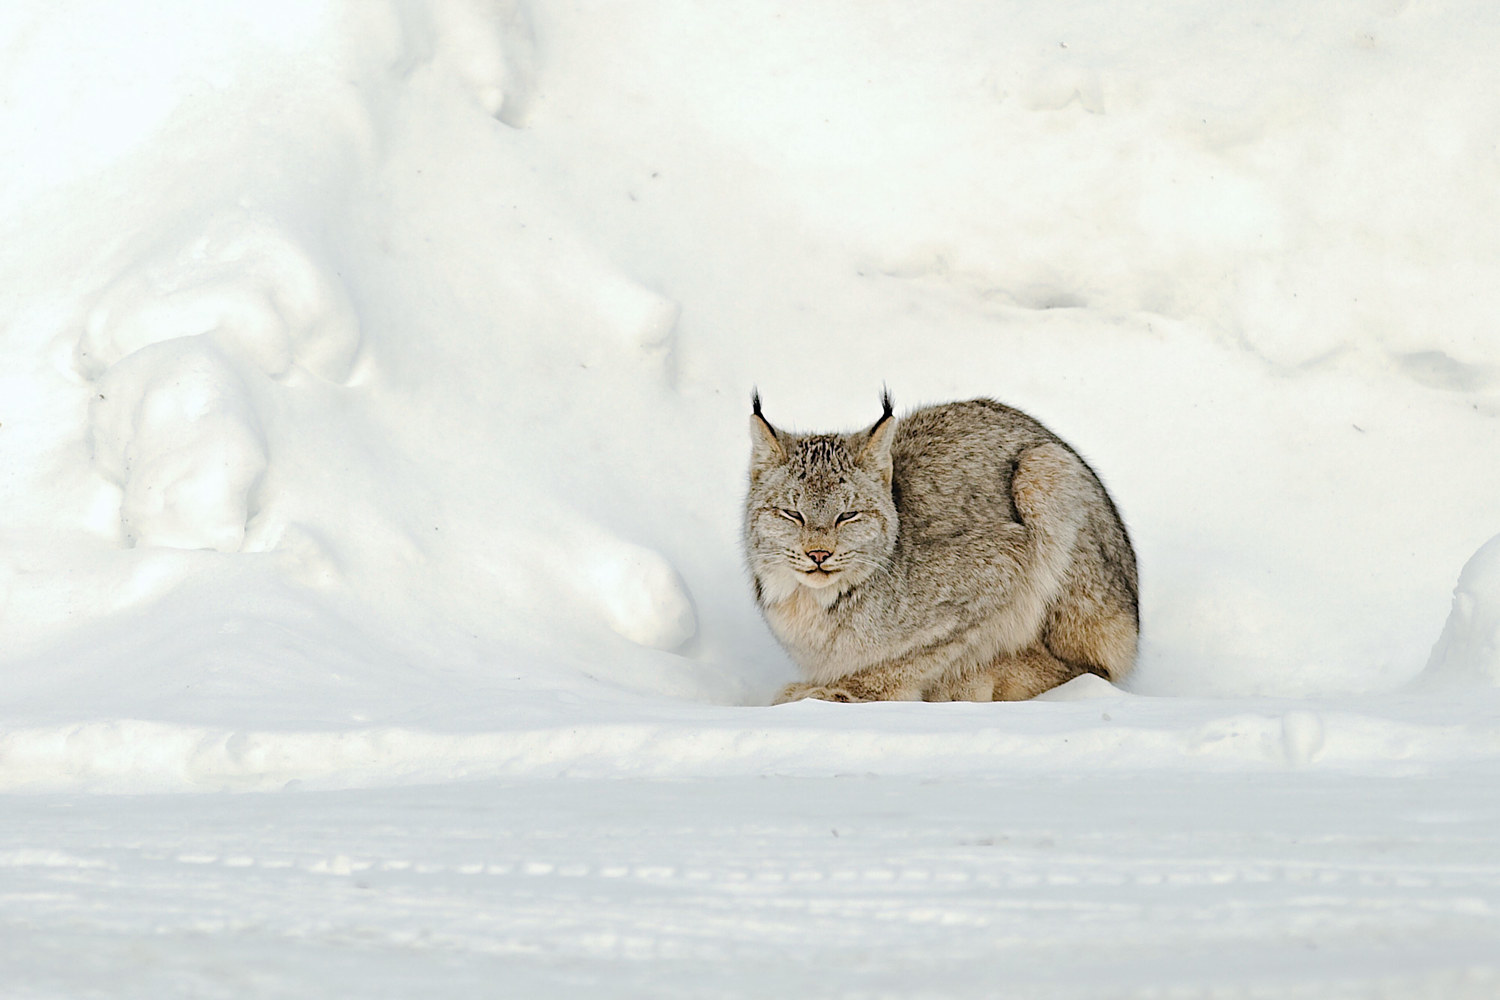 Photography Tucked Into the Snowbank by Marc Brisson